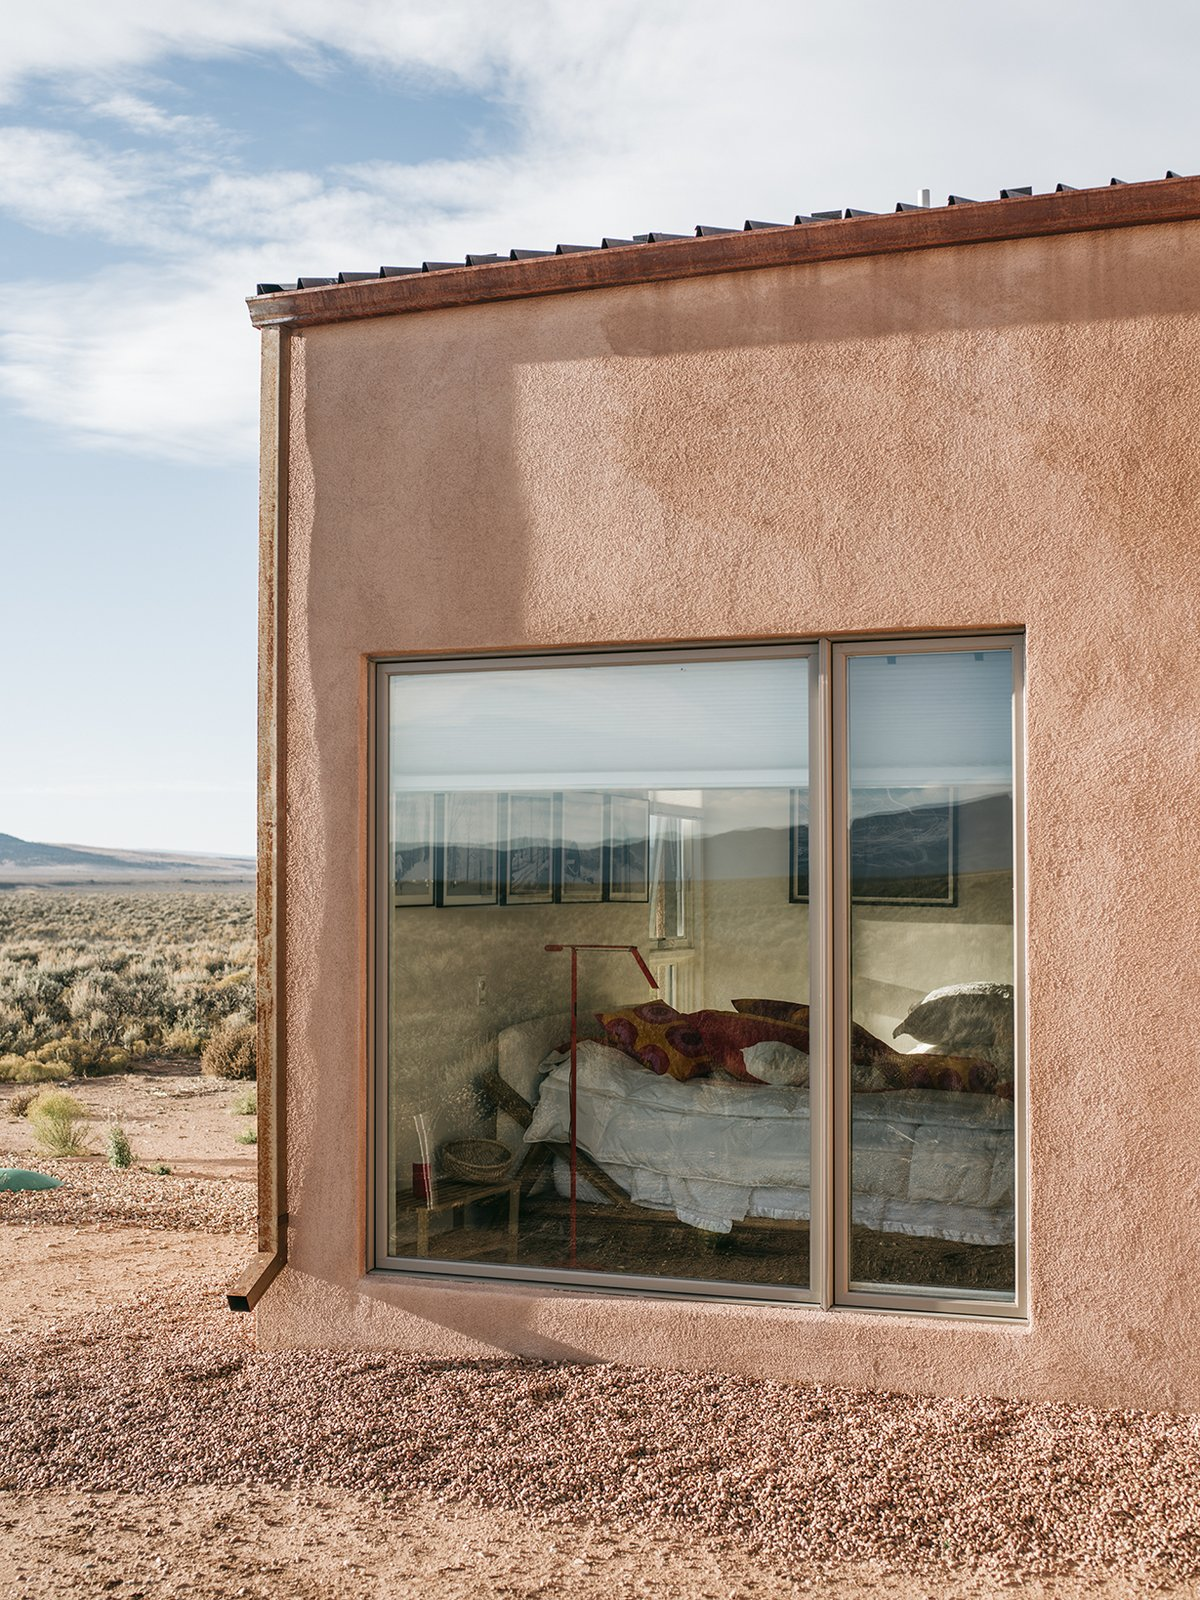 a-gravel-perimeter-keeps-mud-from-splashing-on-the-walls-when-it-rains-adds-molly-you-can-get-away-with-minimal-landscaping-because-theres-so-much-natural-vegetation-here-taos-new-mexico-dwell-magazine-july-august-2017.jpg